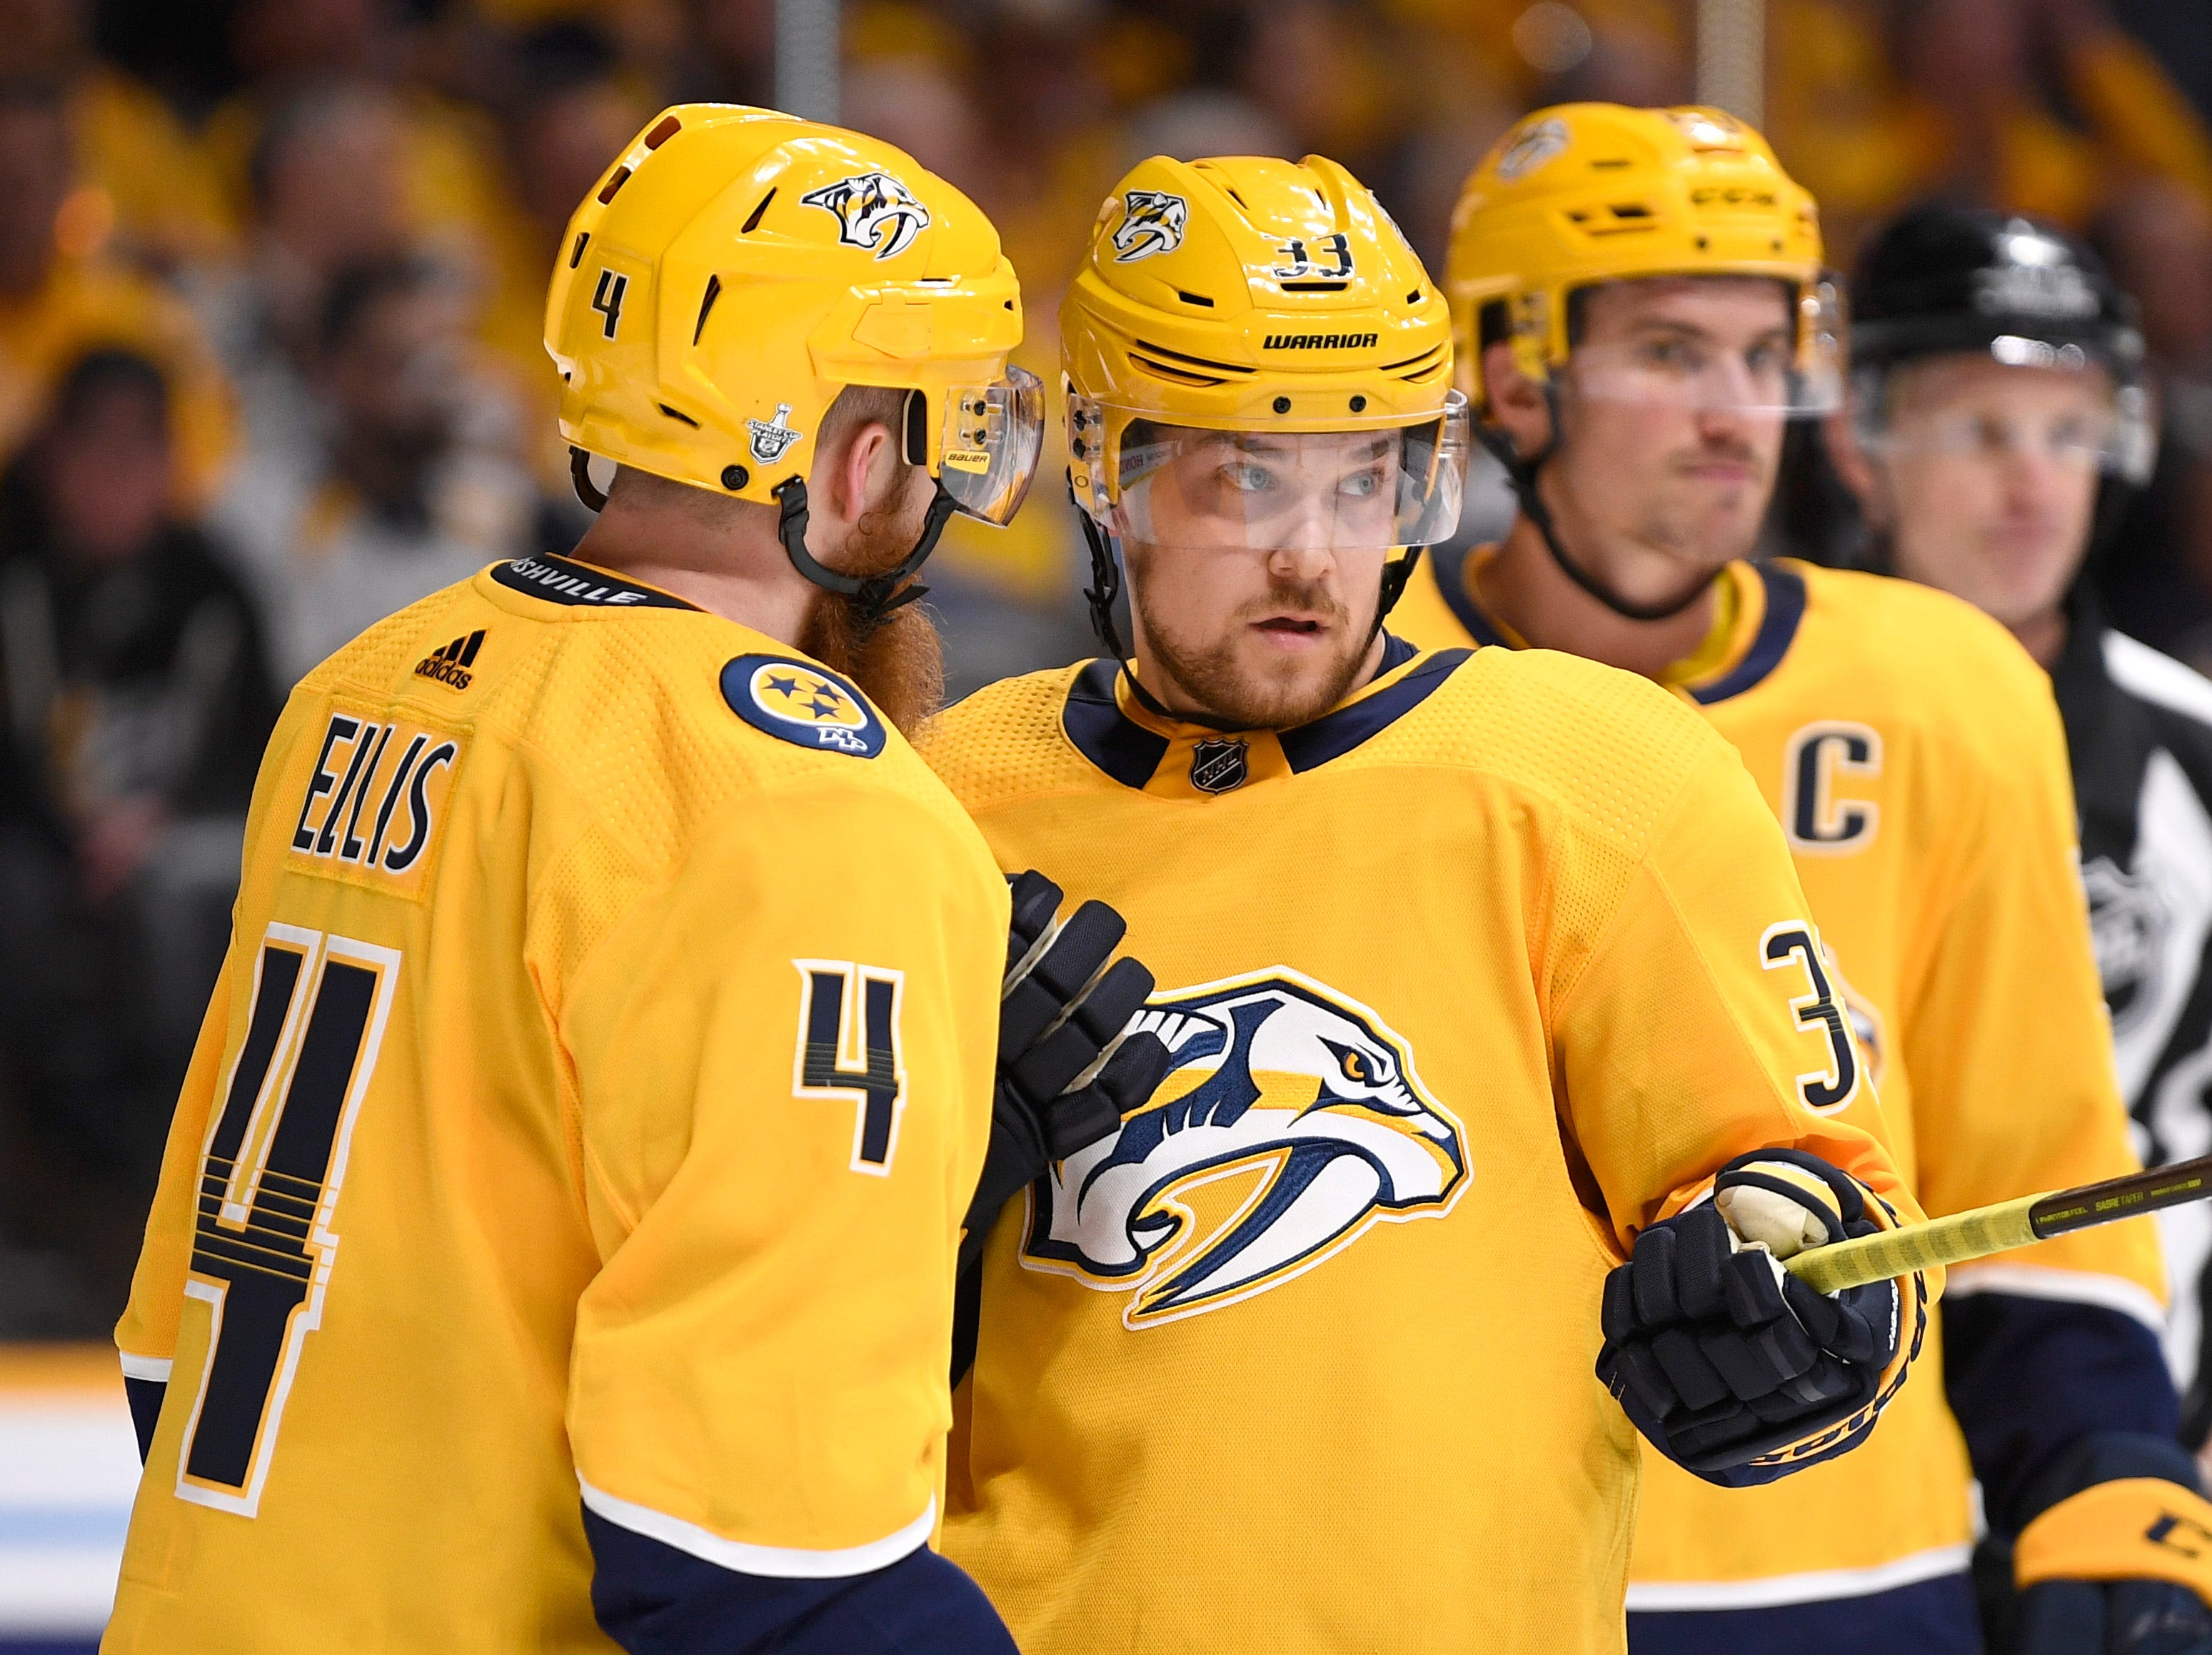 Nashville Predators defenseman Ryan Ellis (4) and right wing Viktor Arvidsson (33) confer during a break in the second period of the divisional semifinal game at Bridgestone Arena in Nashville, Tenn., Wednesday, April 10, 2019.